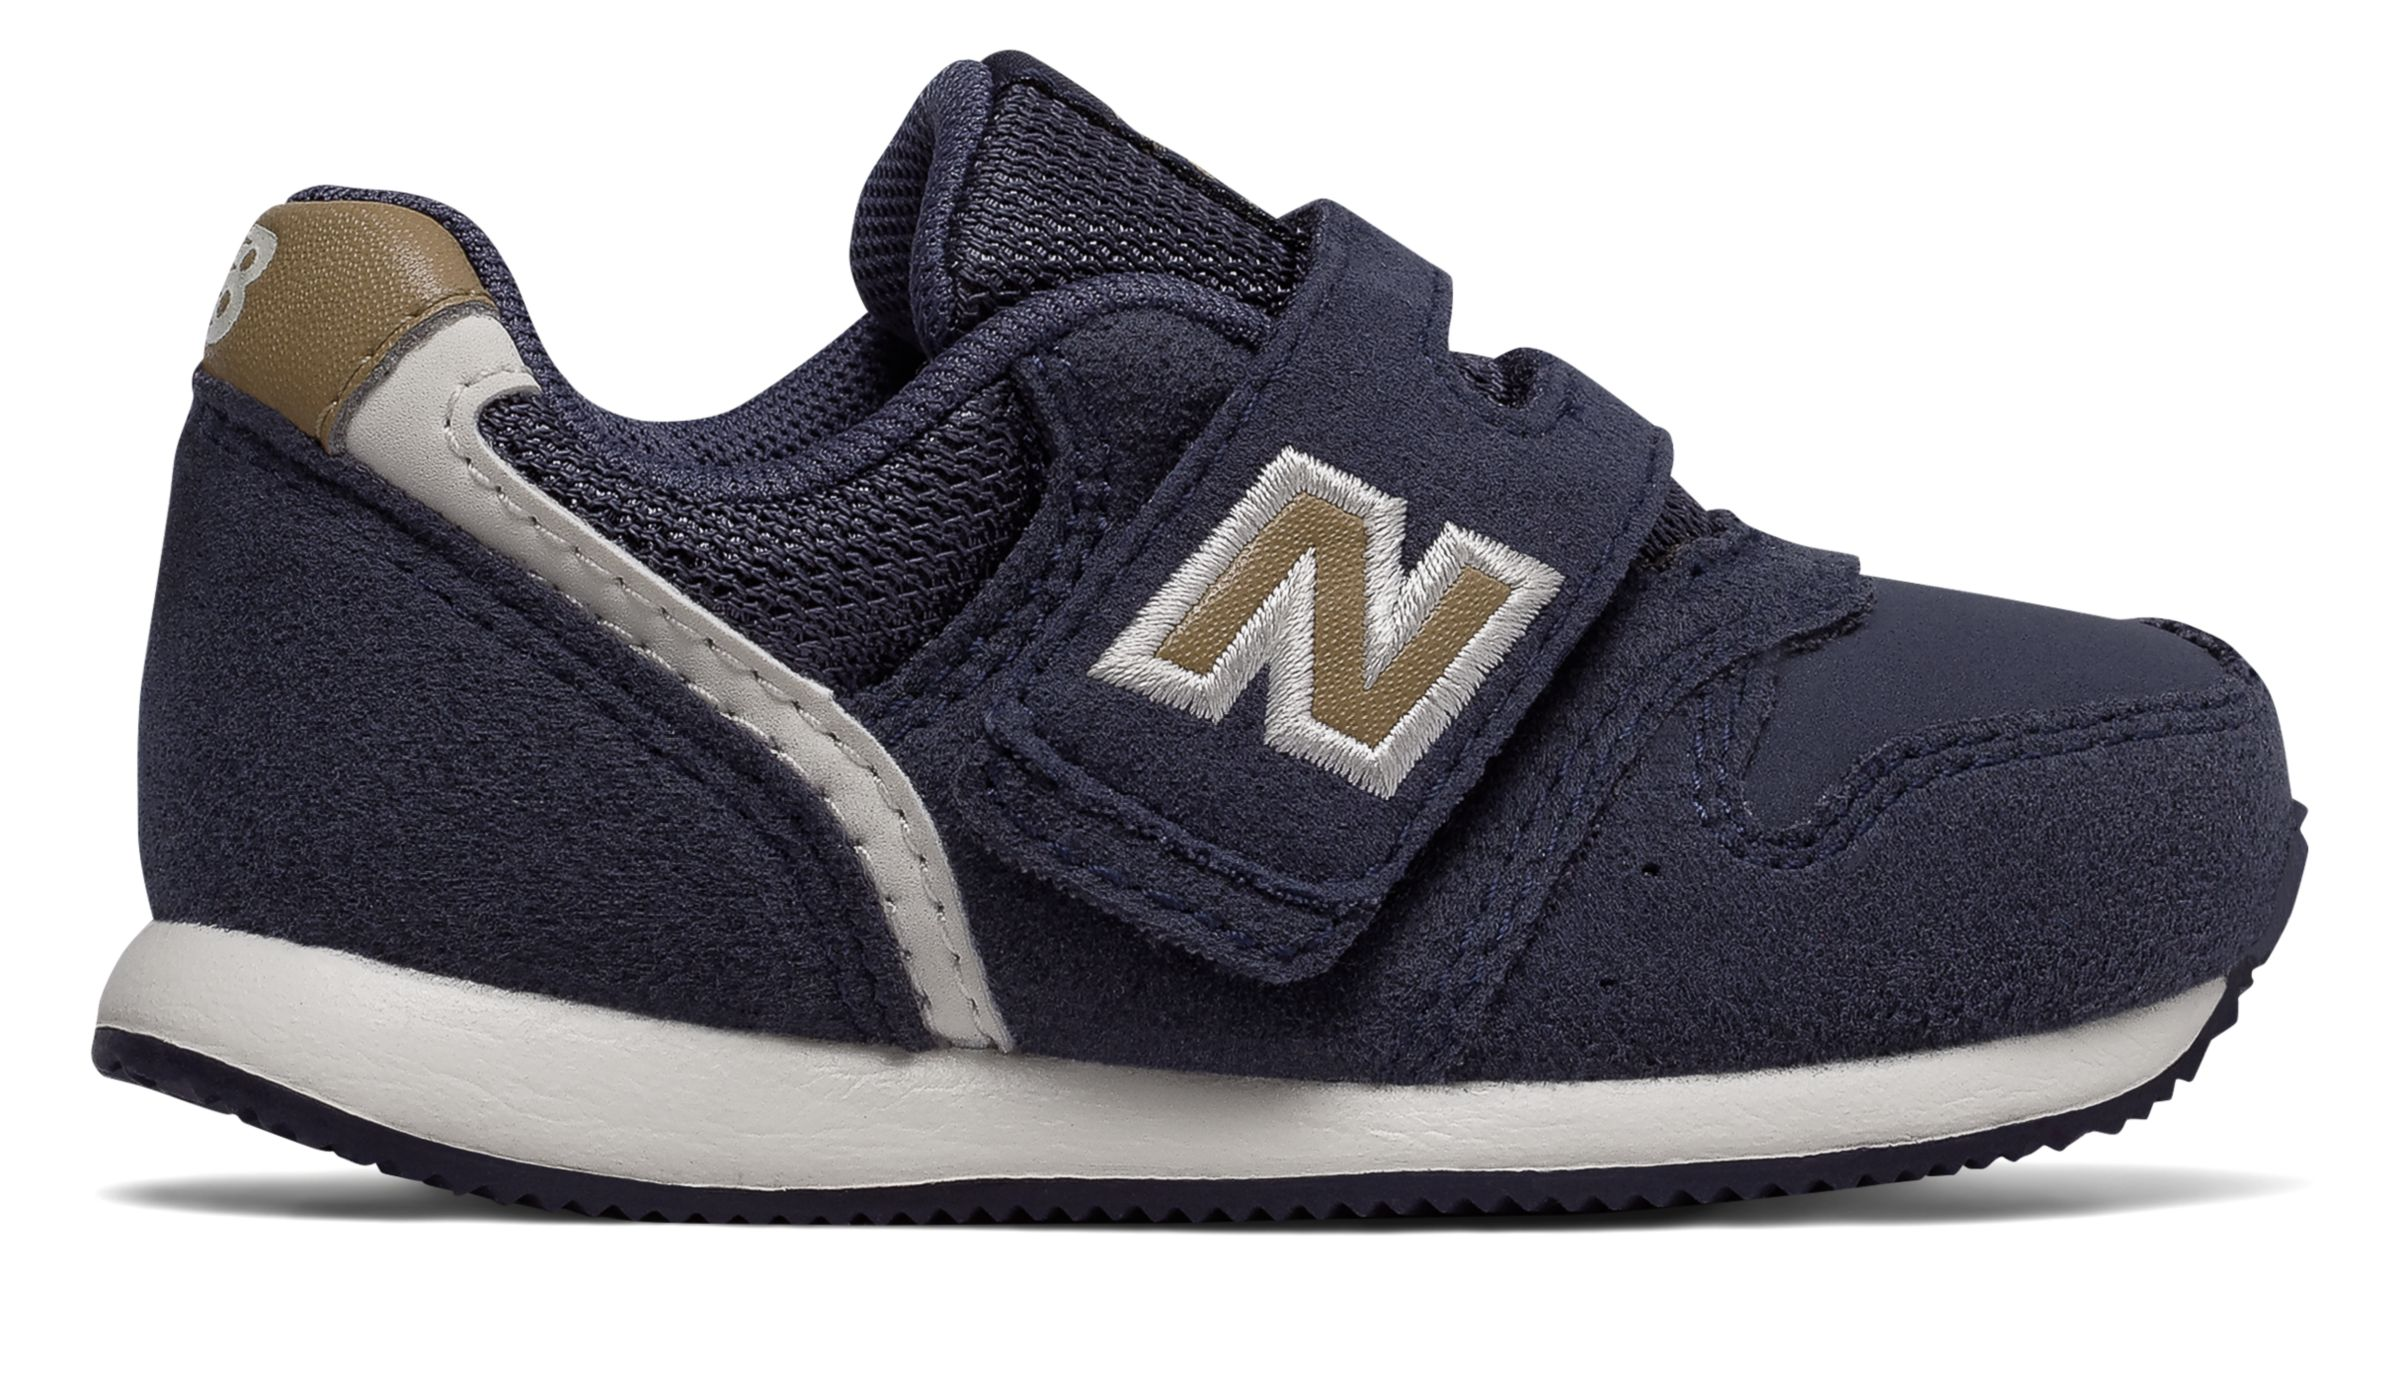 NB 996 New Balance, Navy with Beige